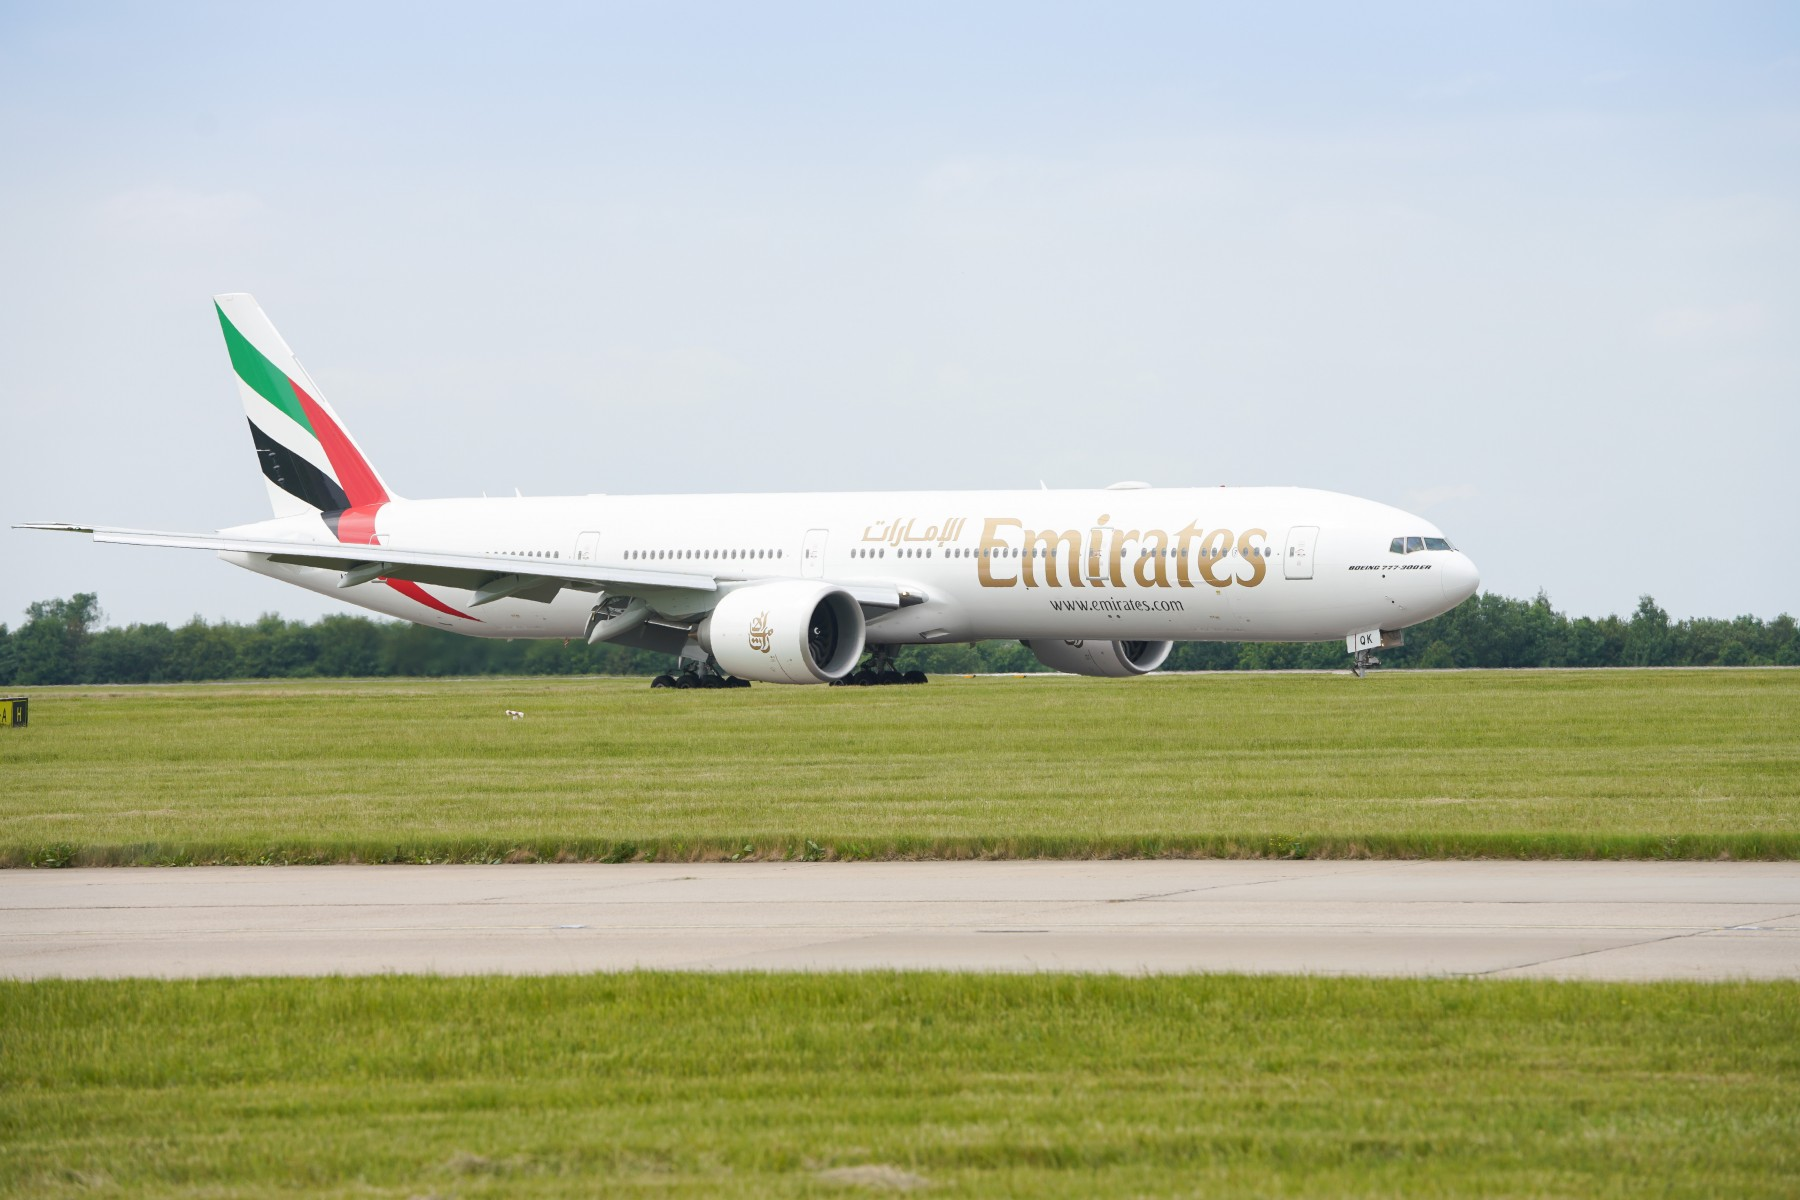 Emirates started direct flights to Dubai from London Stansted in June this year. The airport's first daily service to the UAE.